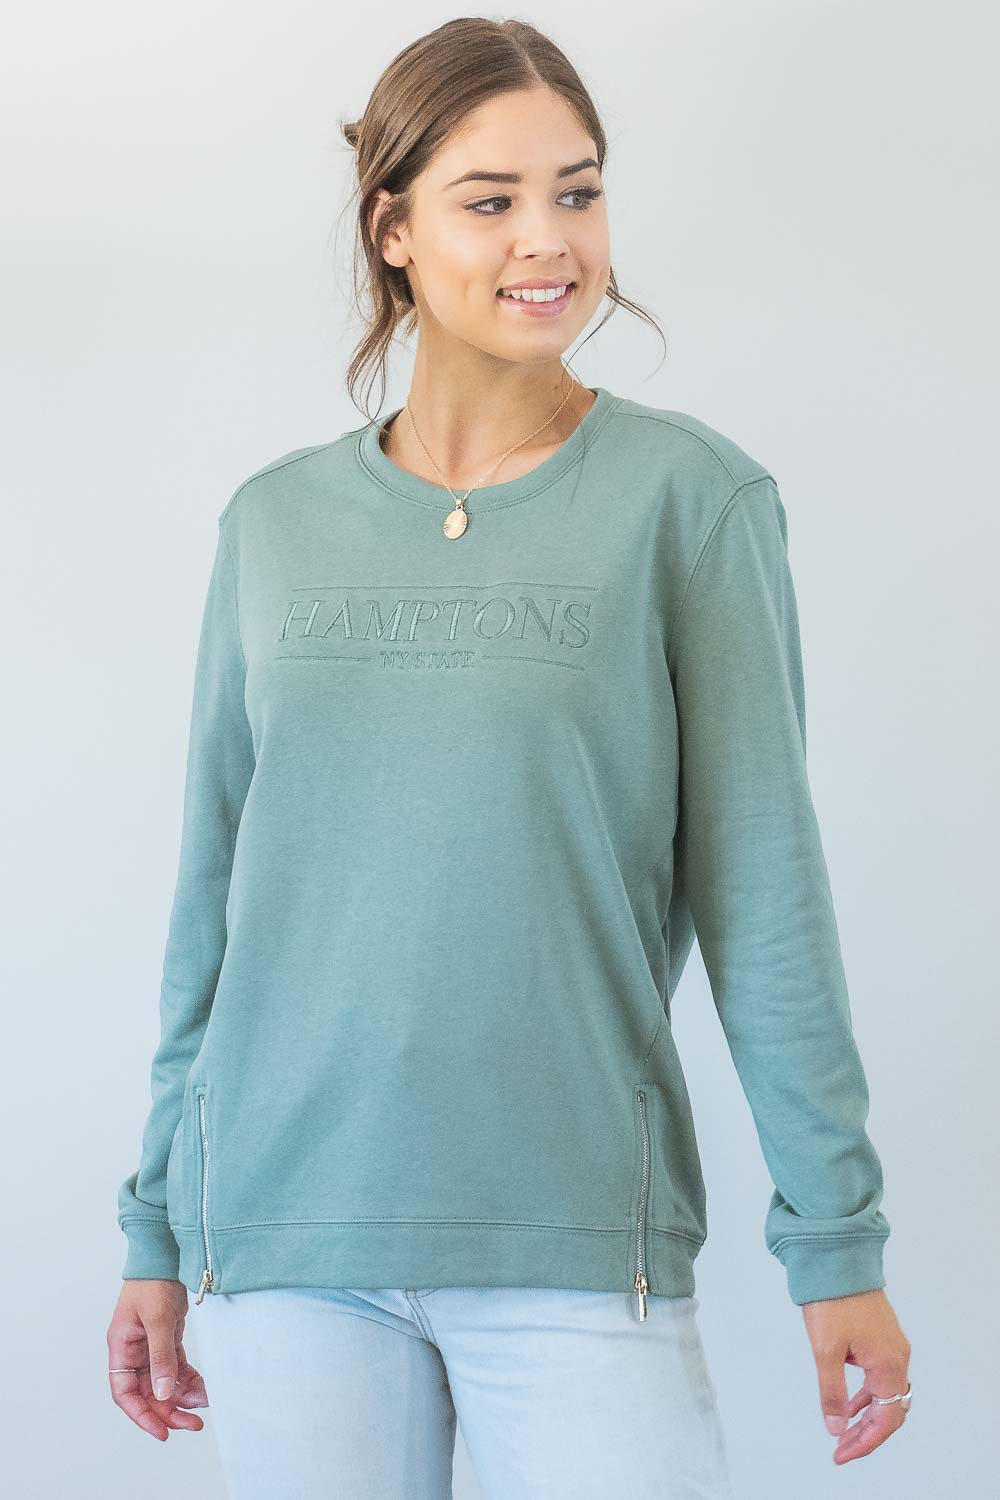 Hamptons Jumper in Sage